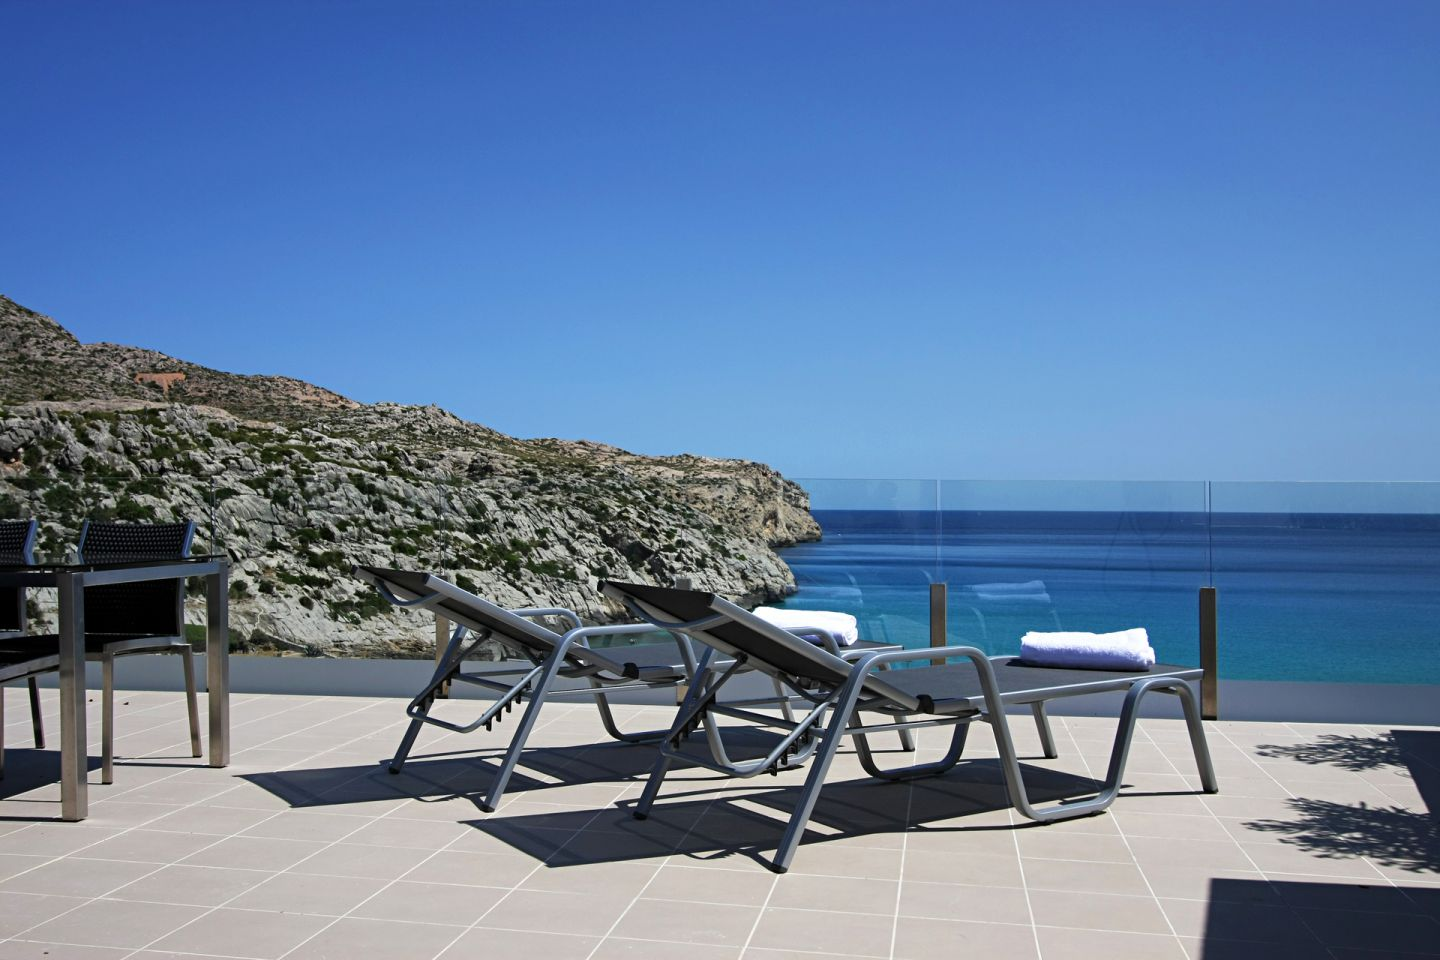 2 Bed Other for sale in Cala San Vicente 0